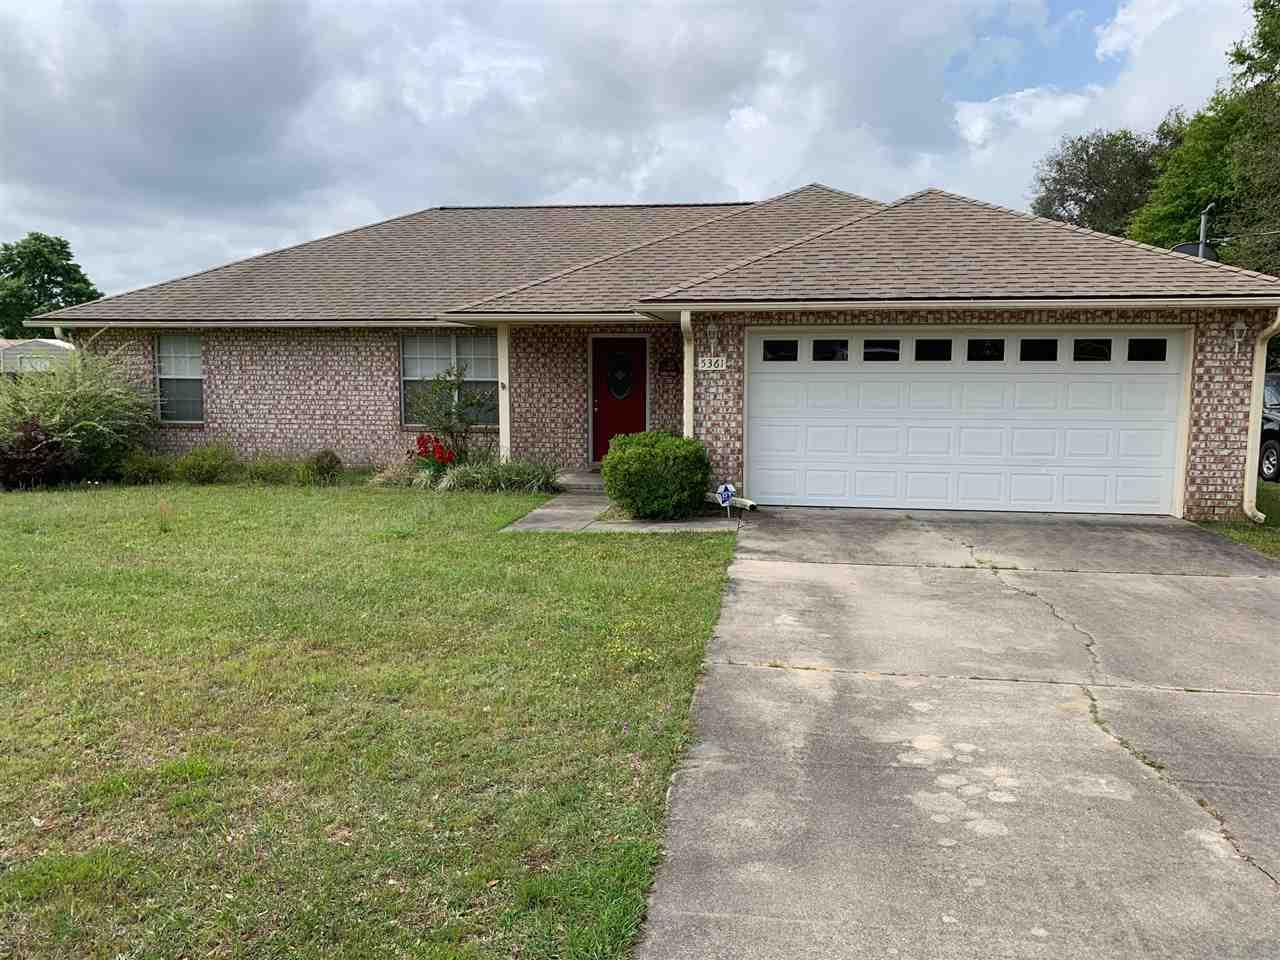 Very well maintained home with large half acre lot with nice pool, 2 yr. old liner, nice yard, patio, 18 x 22 storage building in back with 2 windows, cathedral ceilings, 8' entrance with Roll Up door.  Seller installing new carpet throughout builder grade by mid May or closing.  Septic tank inspected and cleaned 2 years ago, 2 car garage with shelving....great house move in ready!  This 3 bedroom /2 bath home has private Master Suite with full bath, double vanities, separate shower and tub, linen closet and very cozy!  The other two bedrooms are on the other side of the home and share full bath.  The home is not in an HOA that is mandatory. No HOA restrictions or payments.  The refrigerator and washer/dryer do not convey.  Home appliances in great working condition and home professionally cleaned with the new carpet prior to closing!  Call today for easy show!